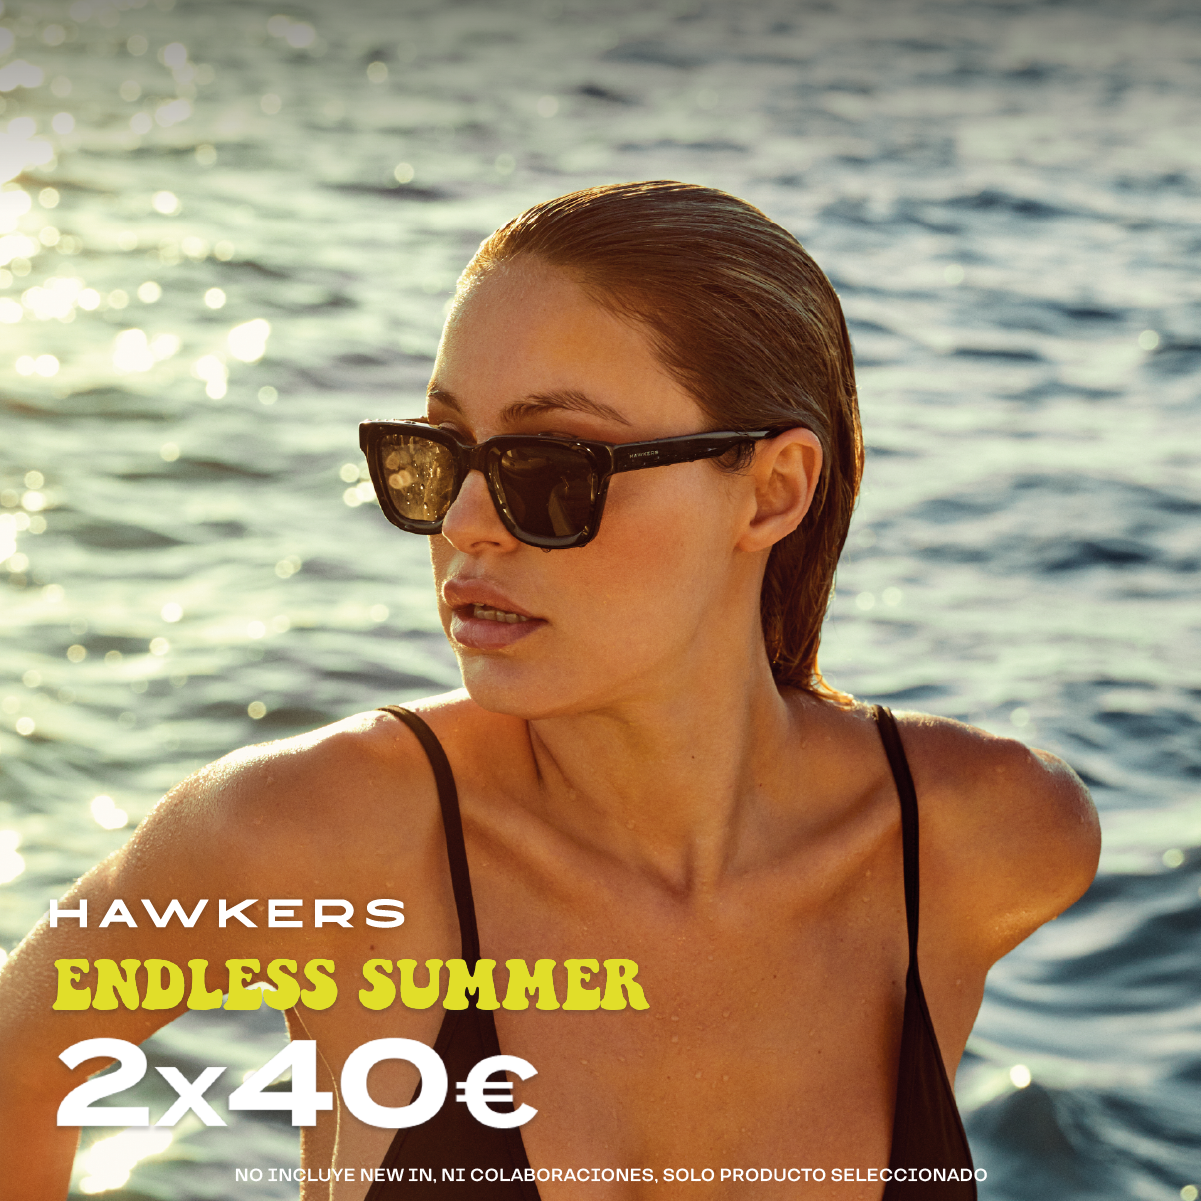 HAWKERS ENDLESS SUMMER